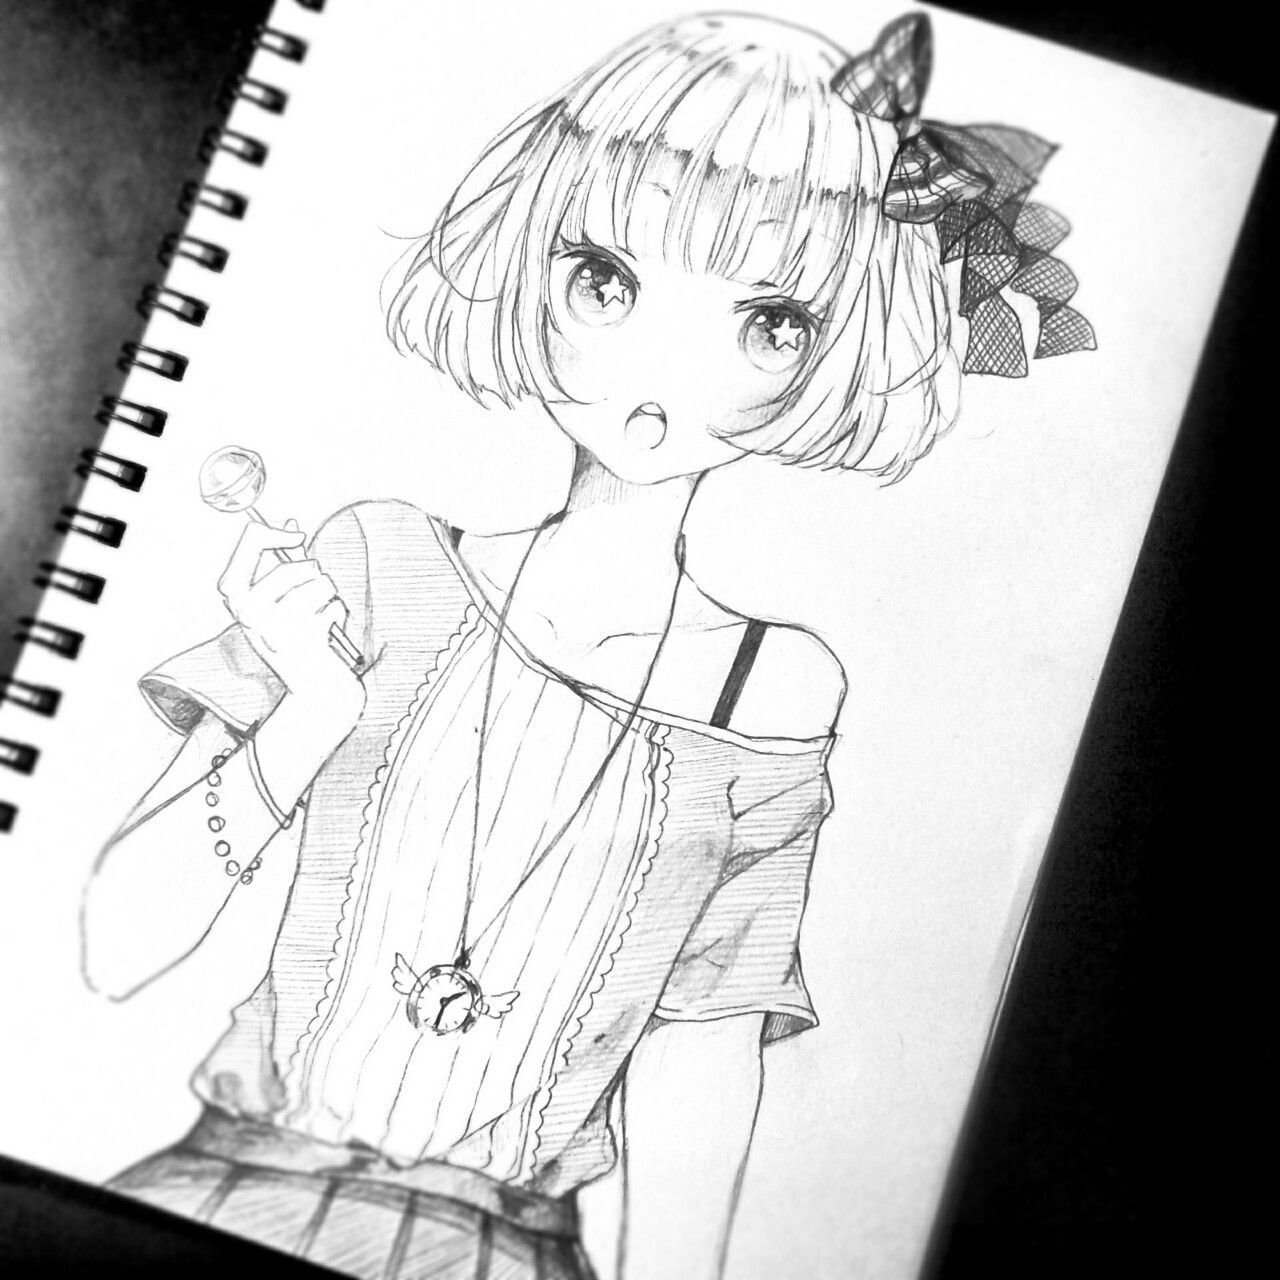 Ava for anime girls in black and white style pencil sketch